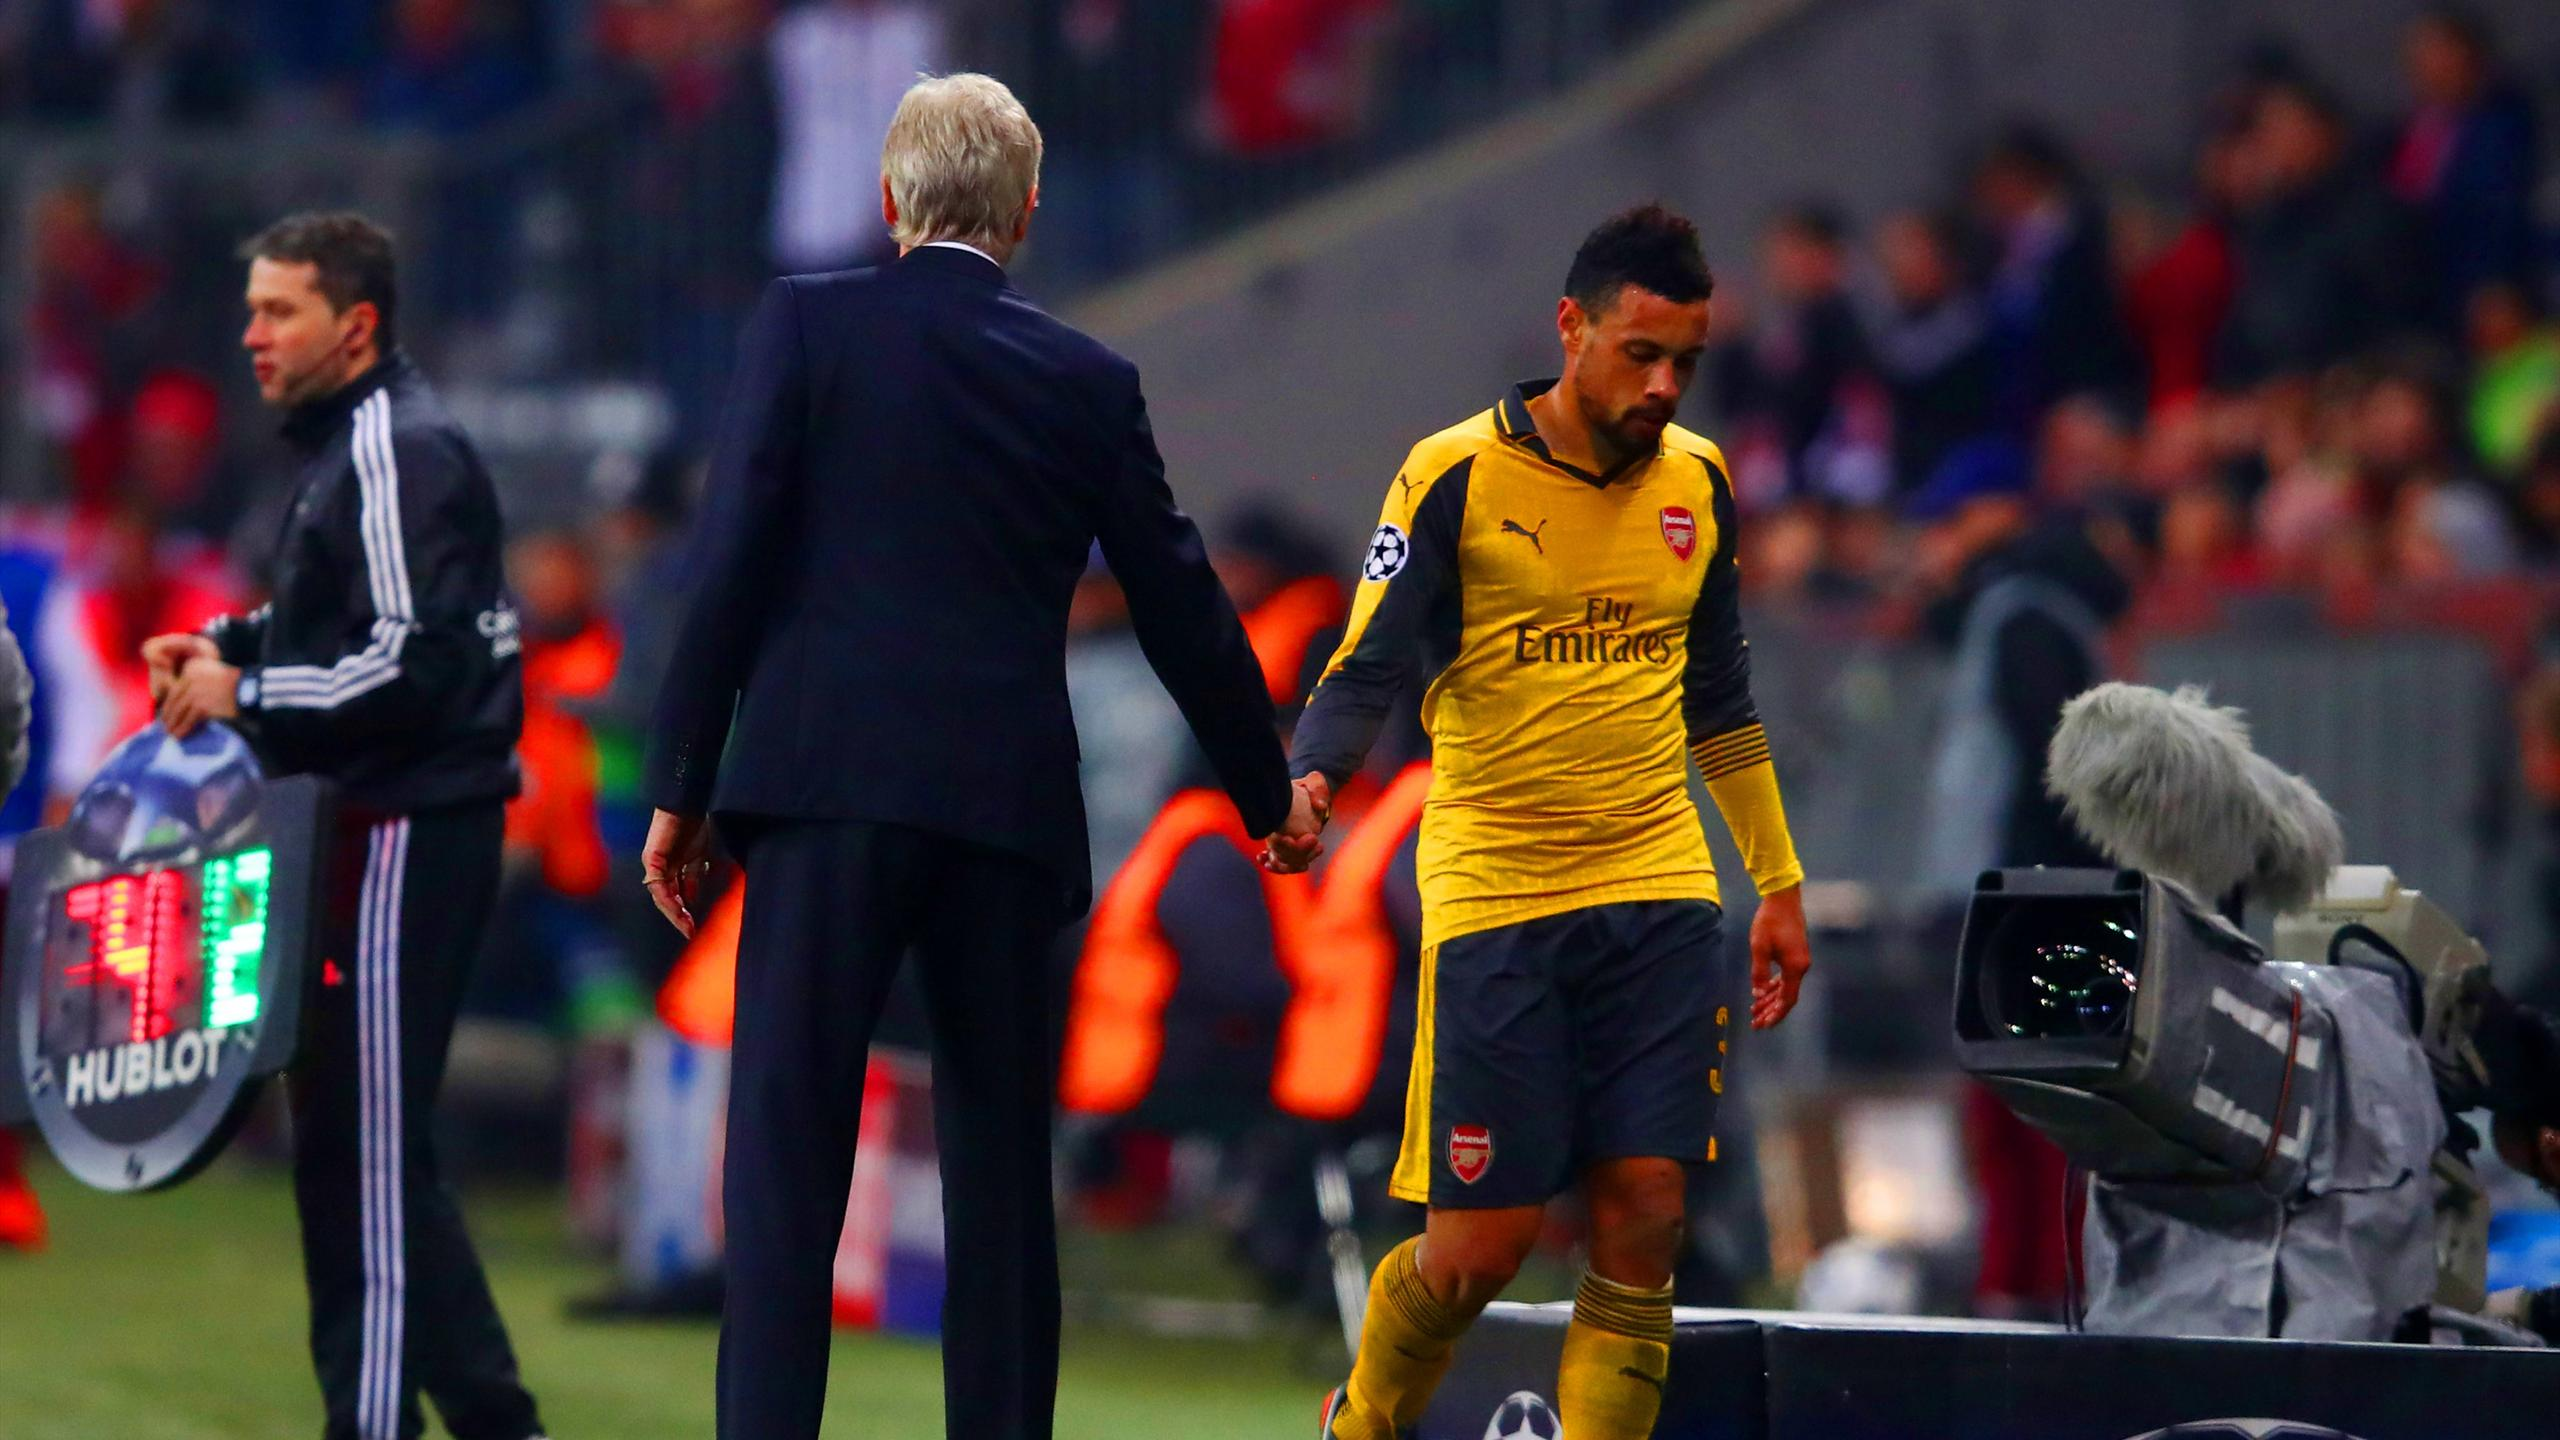 Arsenal's Francis Coquelin walks past manager Arsene Wenger as he is substituted